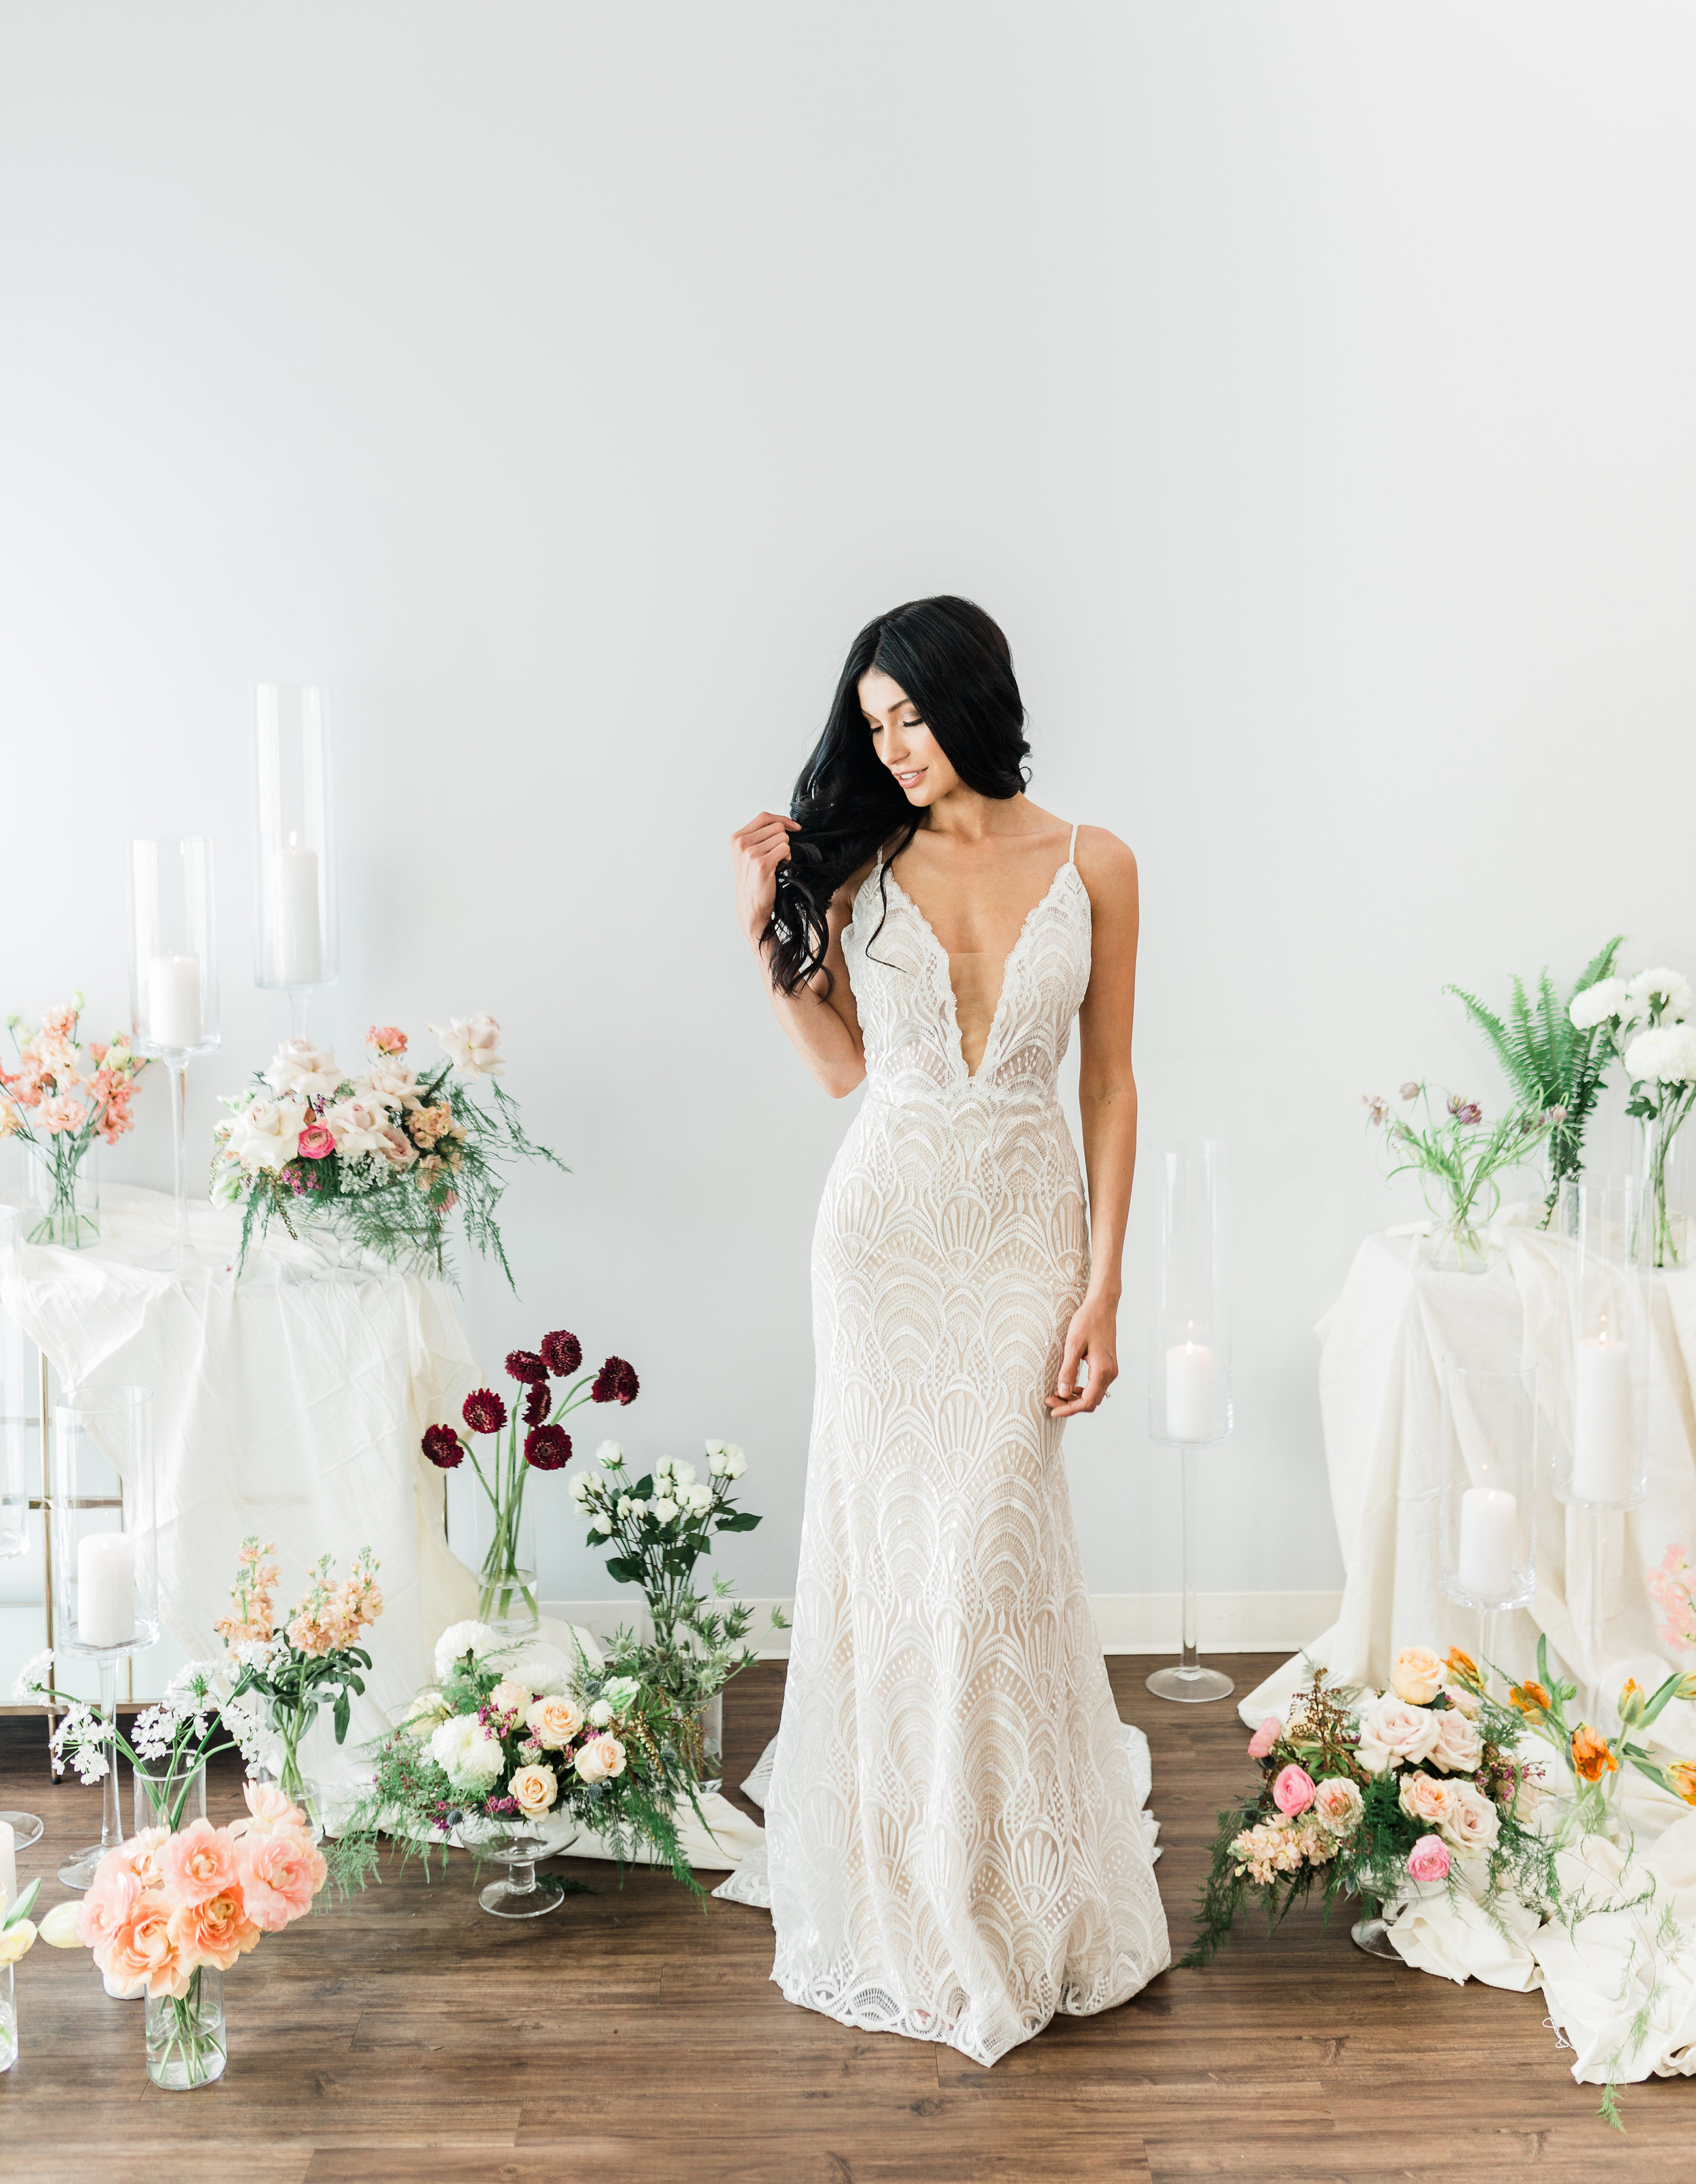 Wedding Dress Shopping - Bella Lily Bridal Inspiration Shoot